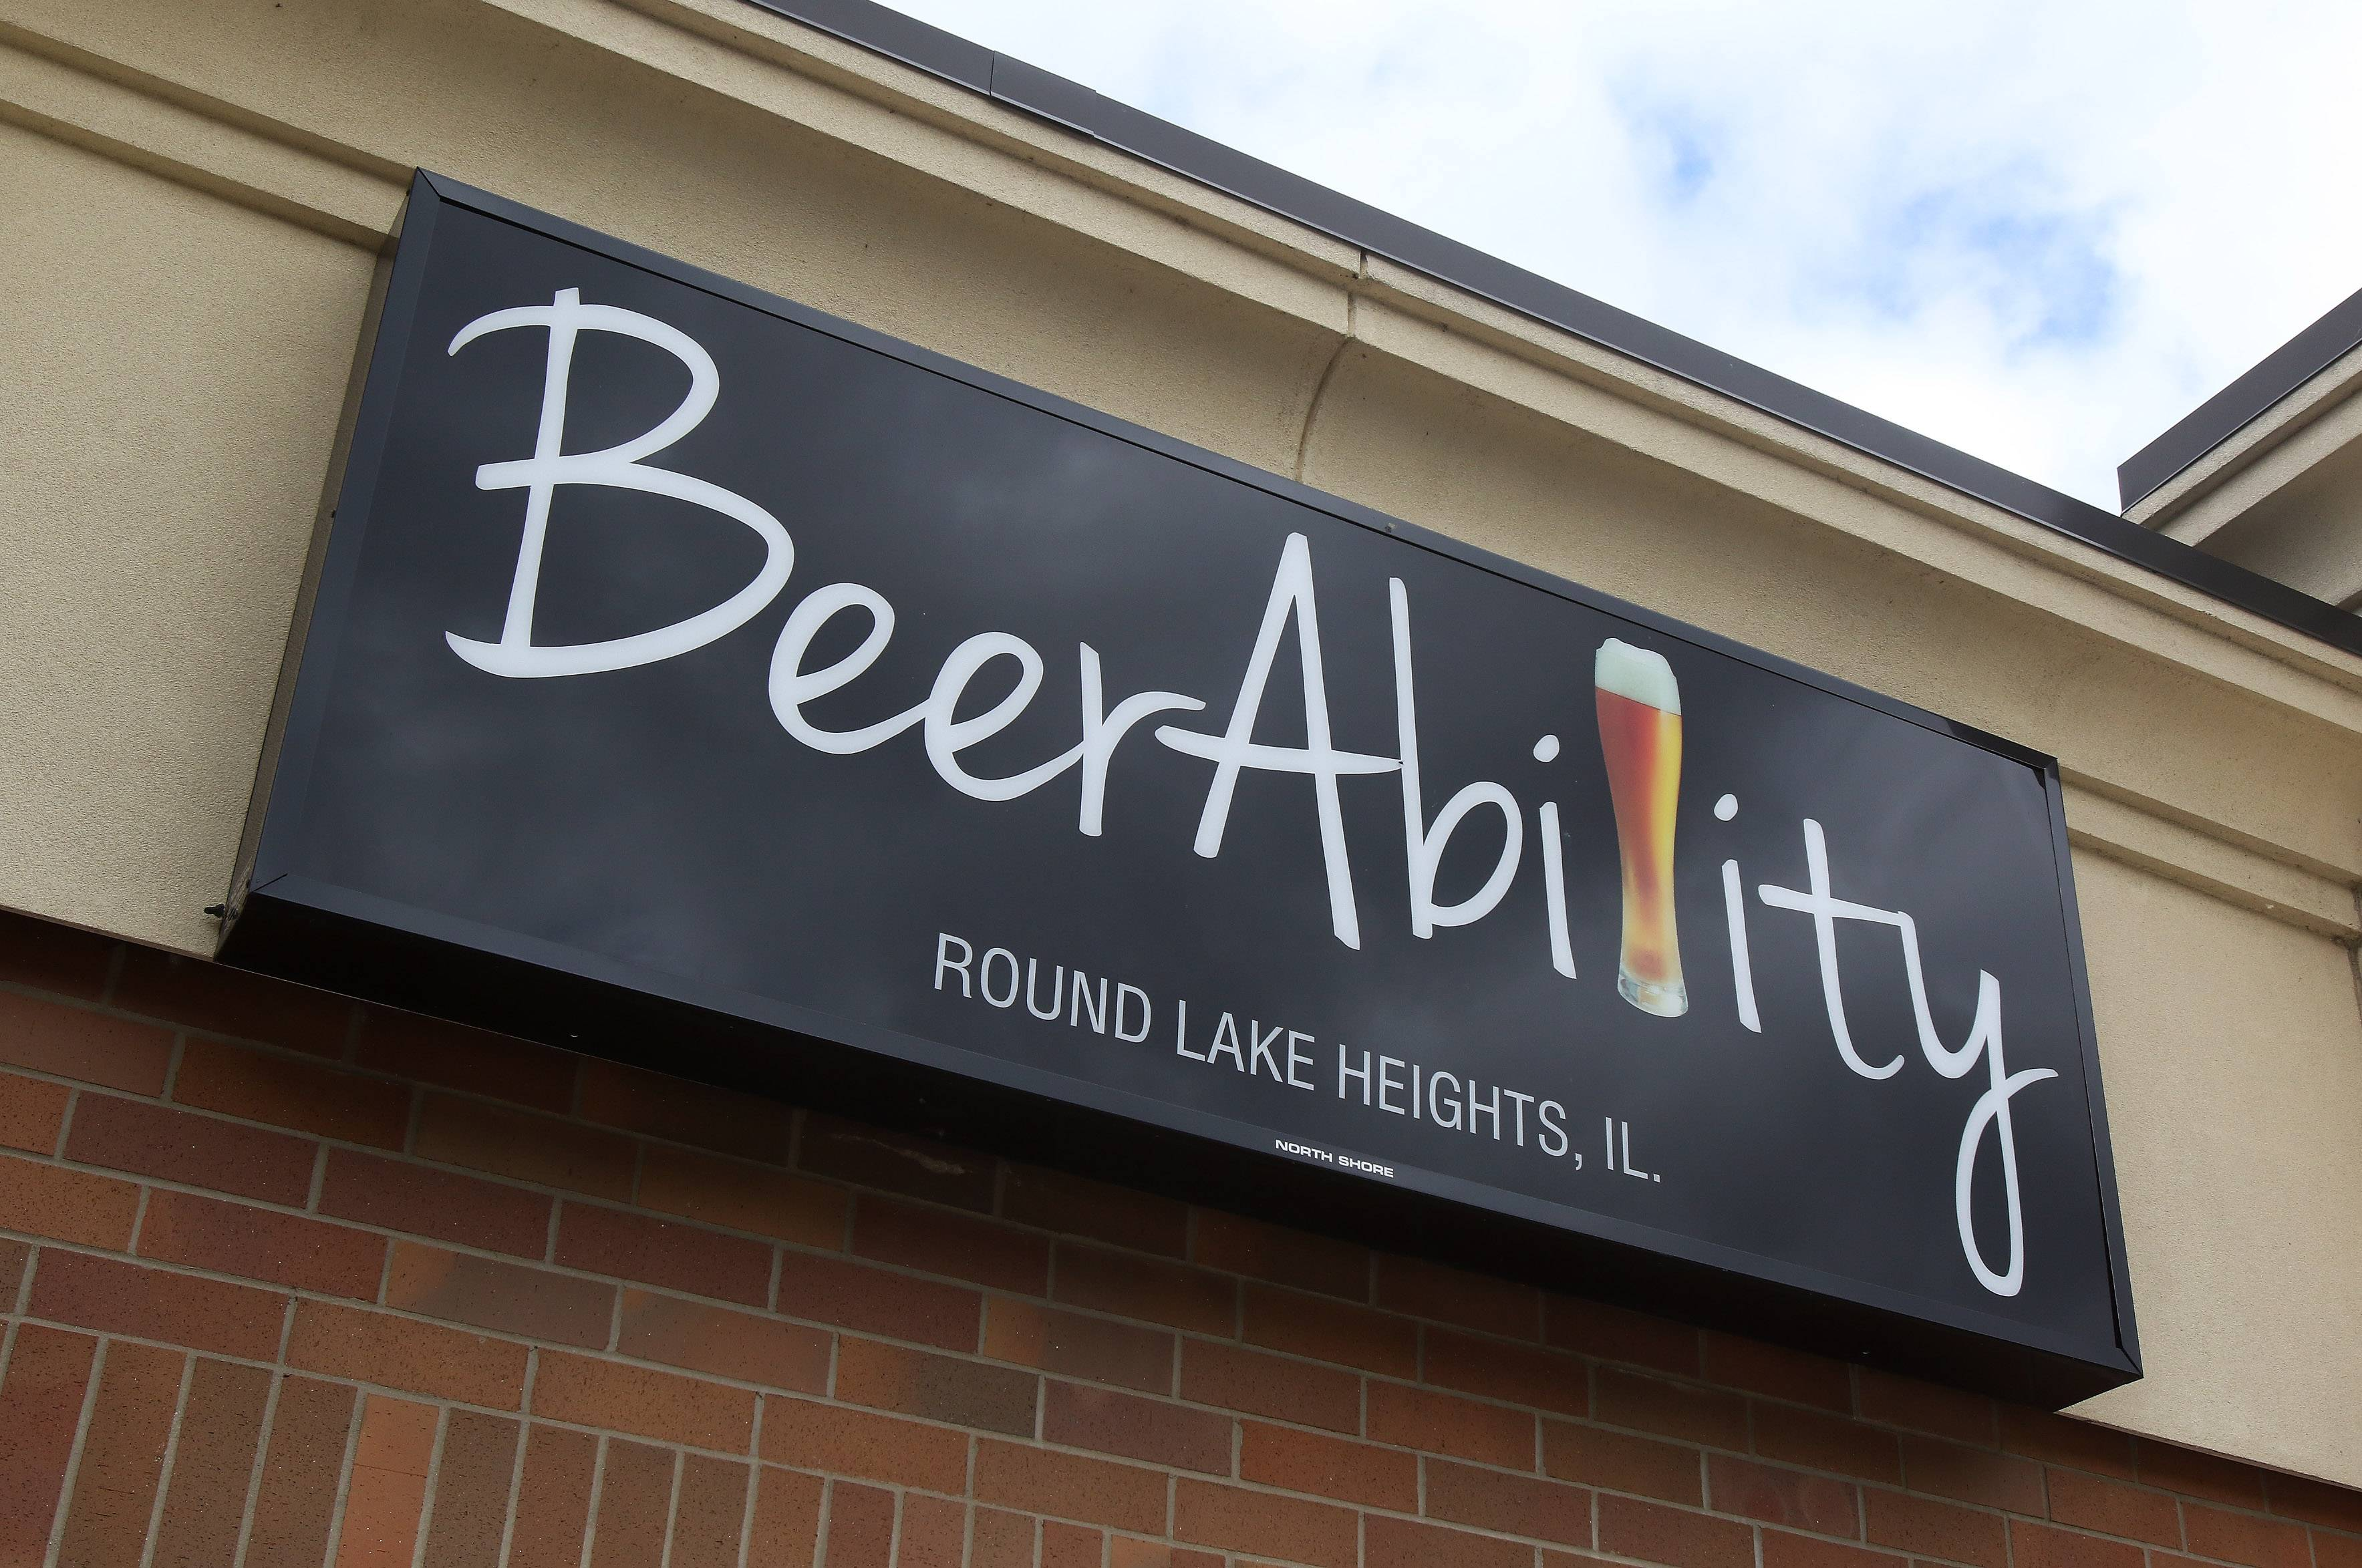 BeerAbility pub in Round Lake Heights.